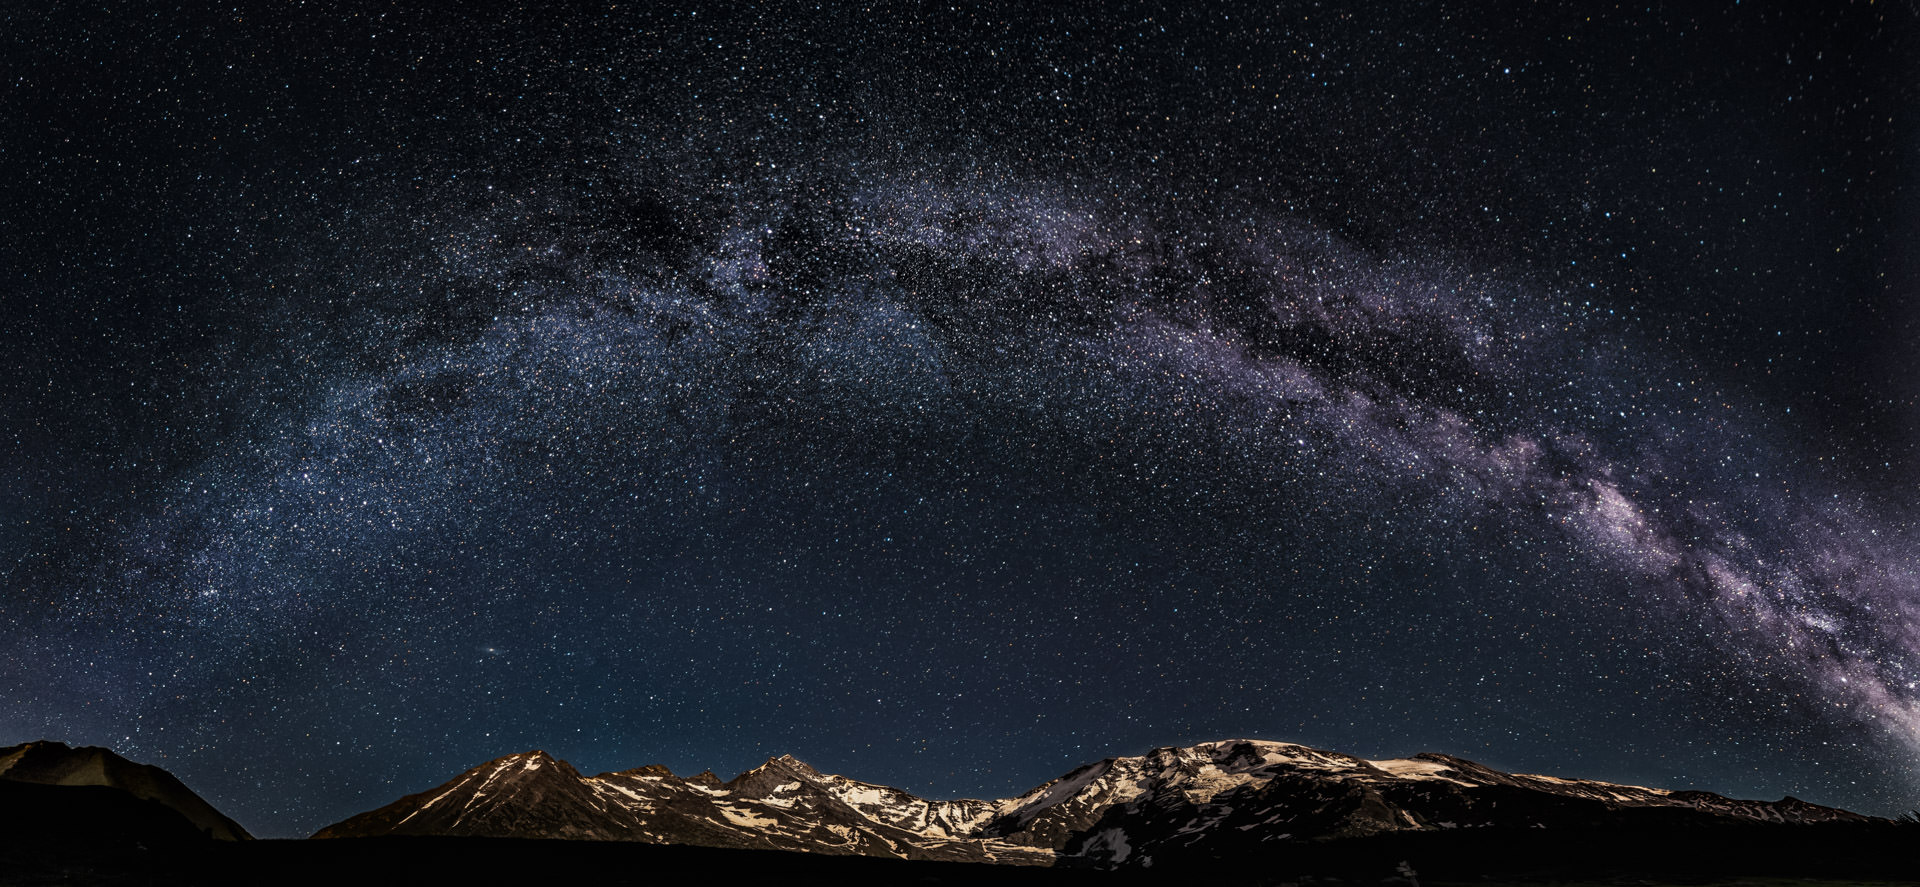 Milkyway - Mont Blanc, France - Landscape Photography